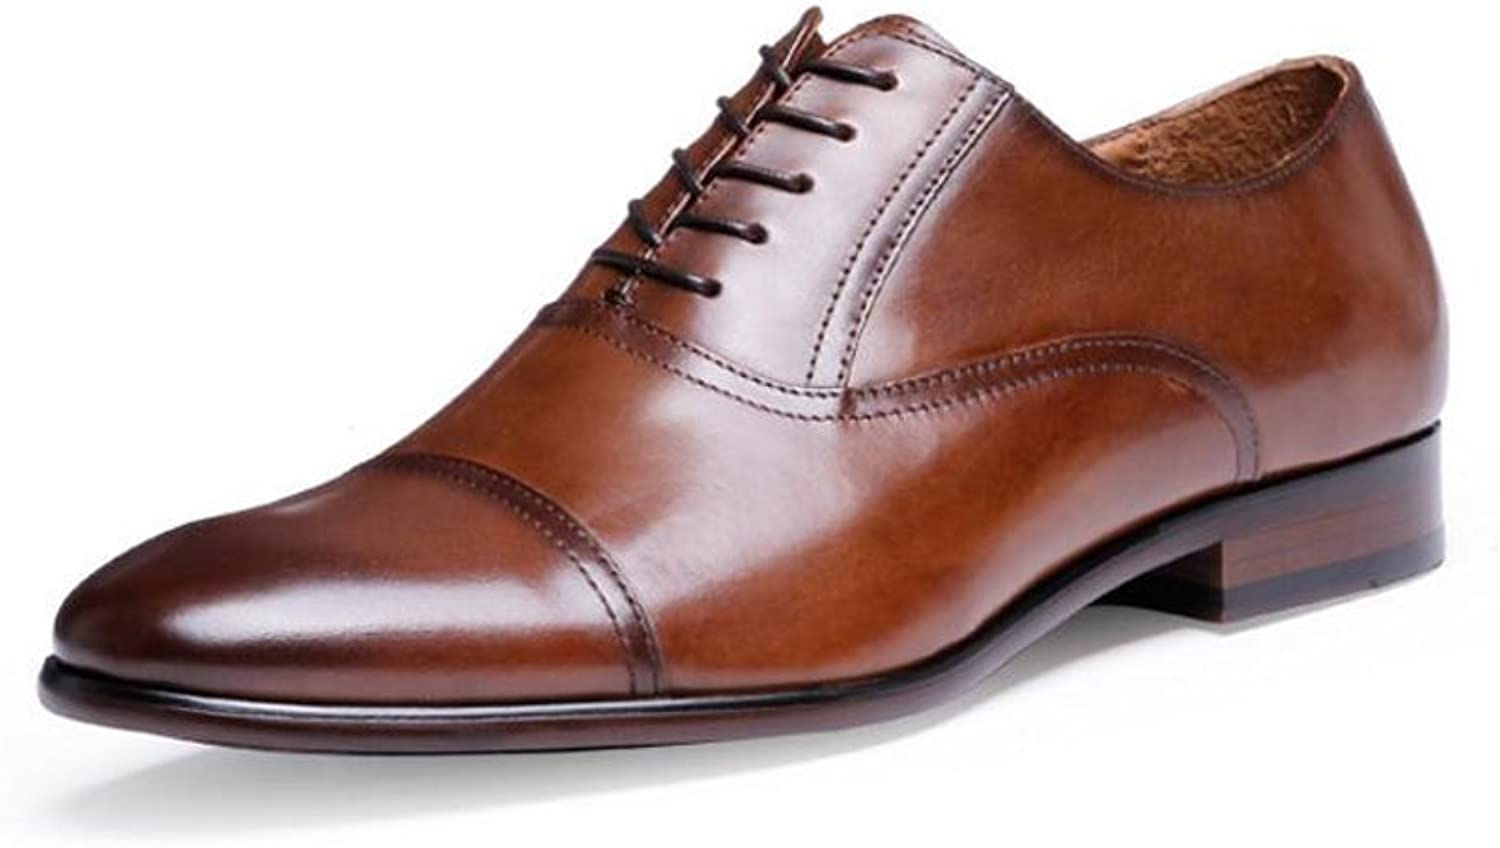 SXZHSM Men's Casual Pointed Oxford Lace Business shoes Men's Fashion Leather Formal shoes Large Size 39-47 Yards Men's Leather Boots (color   Brown, Size   44 EU)